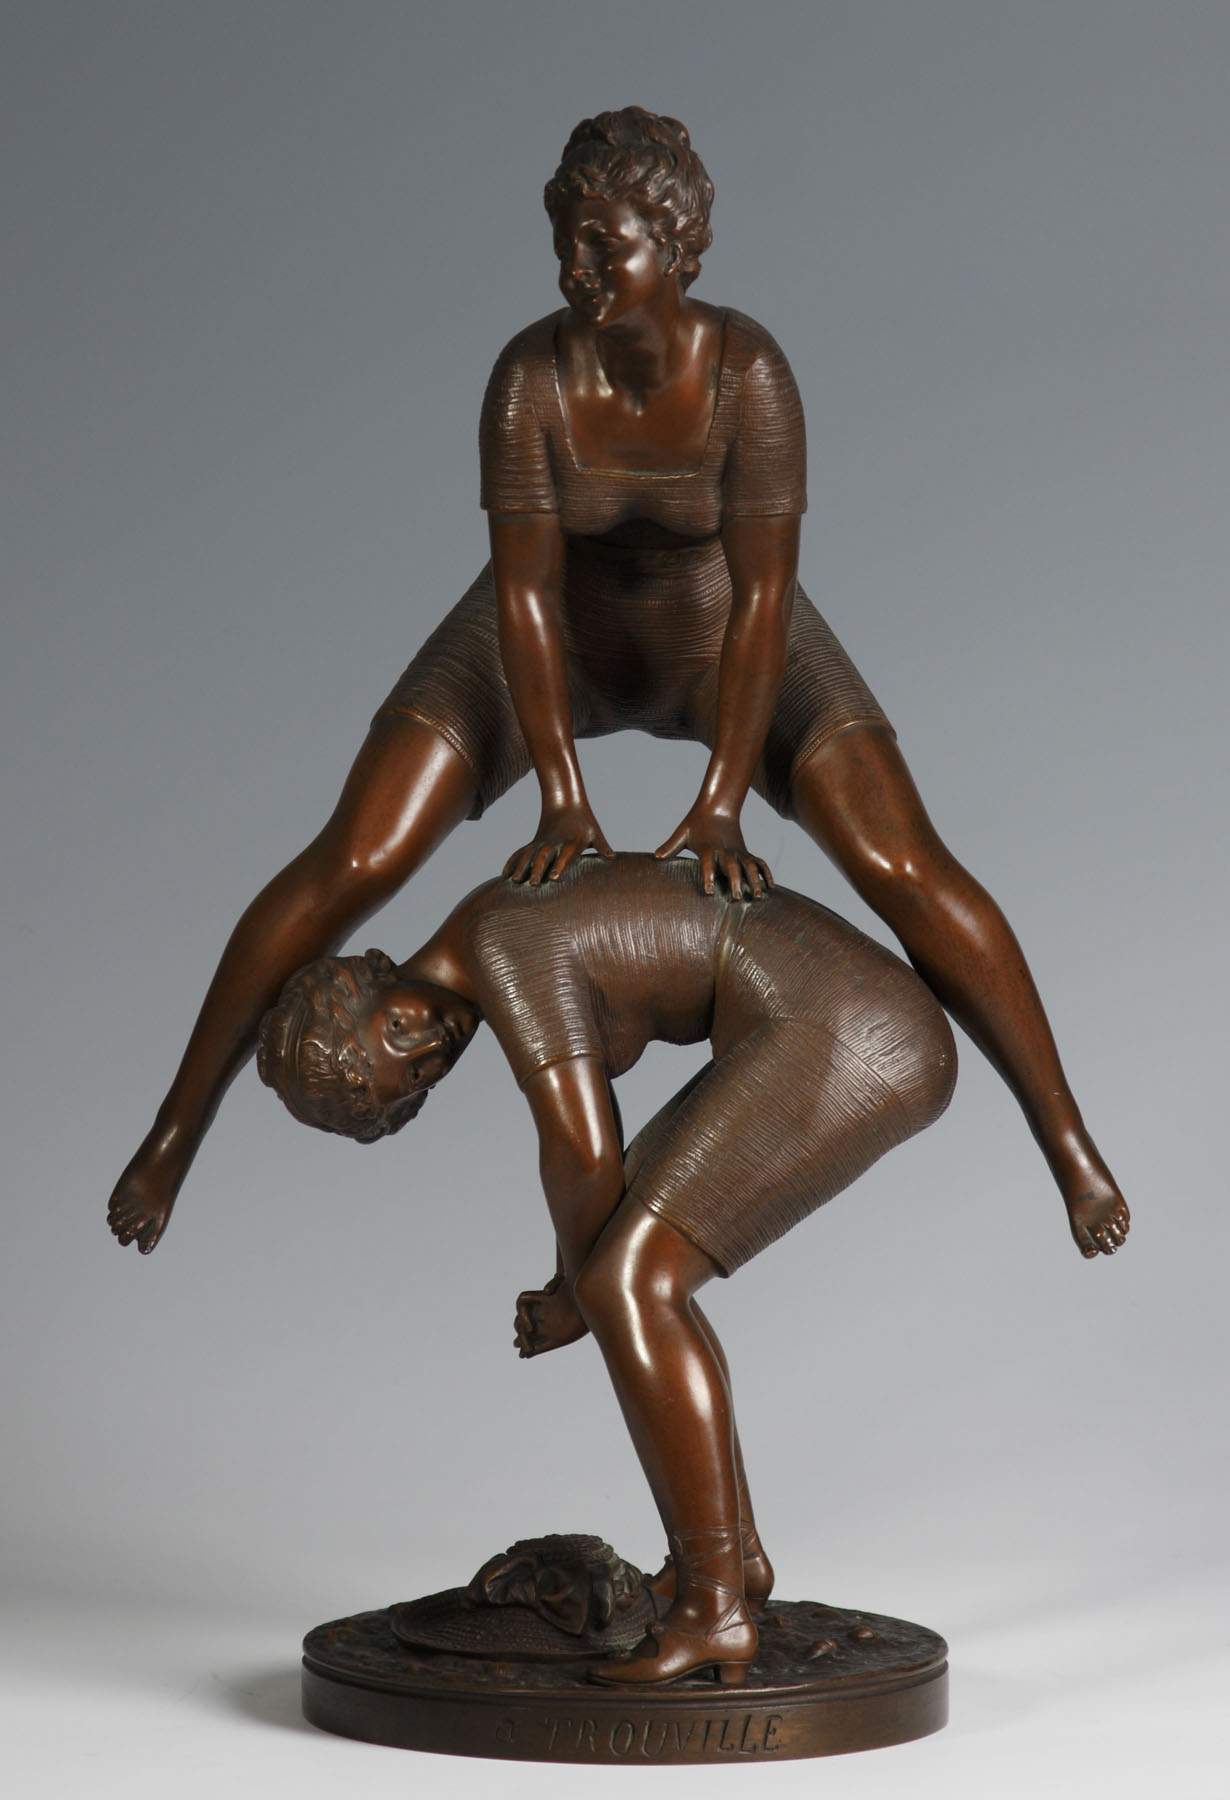 Ernest Rancoulet (French, 1870-1915) Bronze